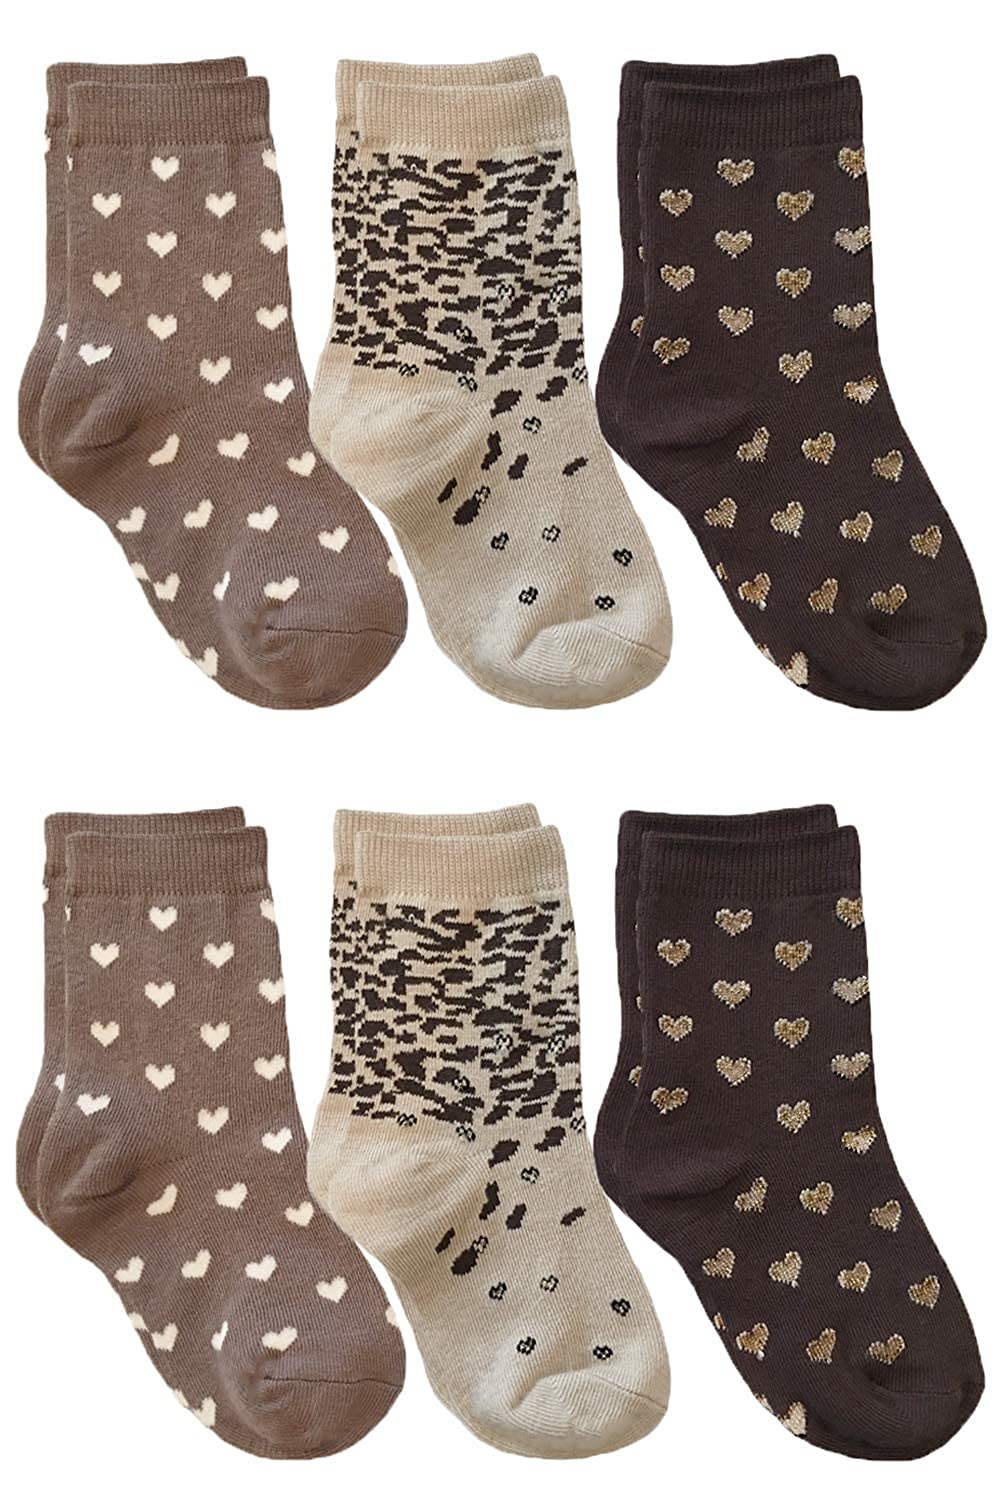 Country Kids Girls Chocolate Sweet Hearts Sparkly Novelty Socks Pack of 6